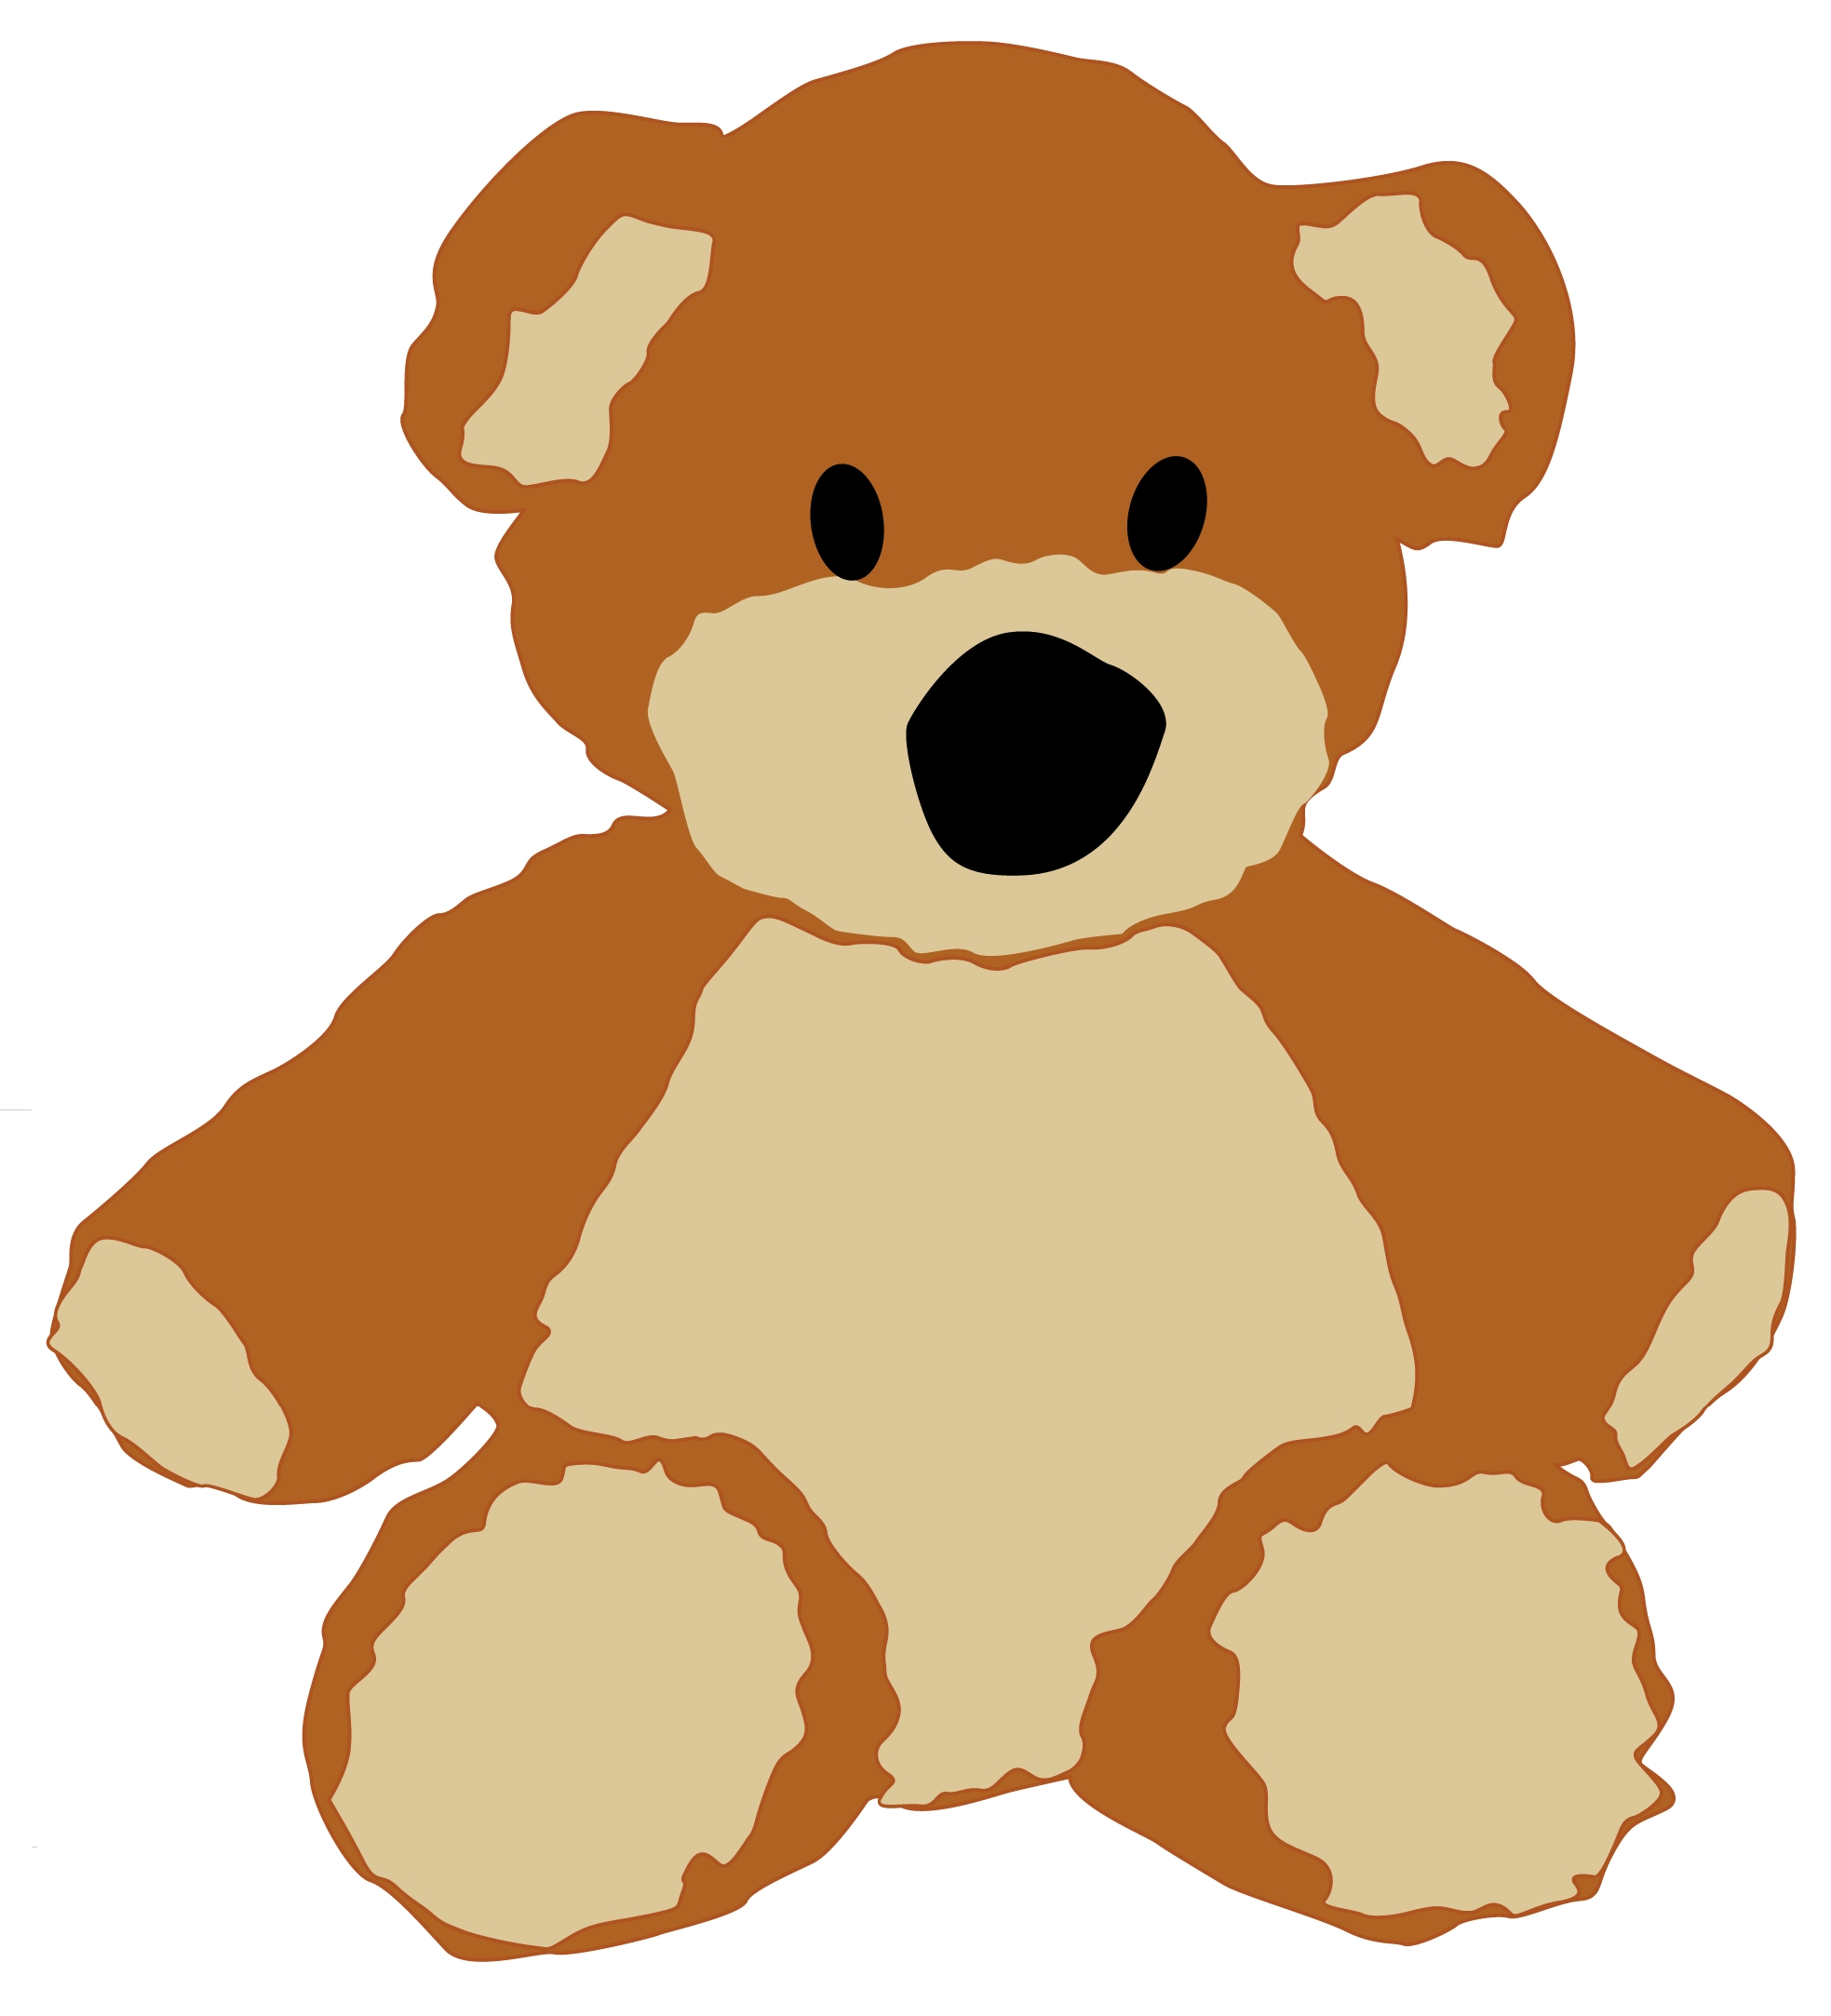 graphic free download Teddy bear clipart free. Ted cliparts download clip